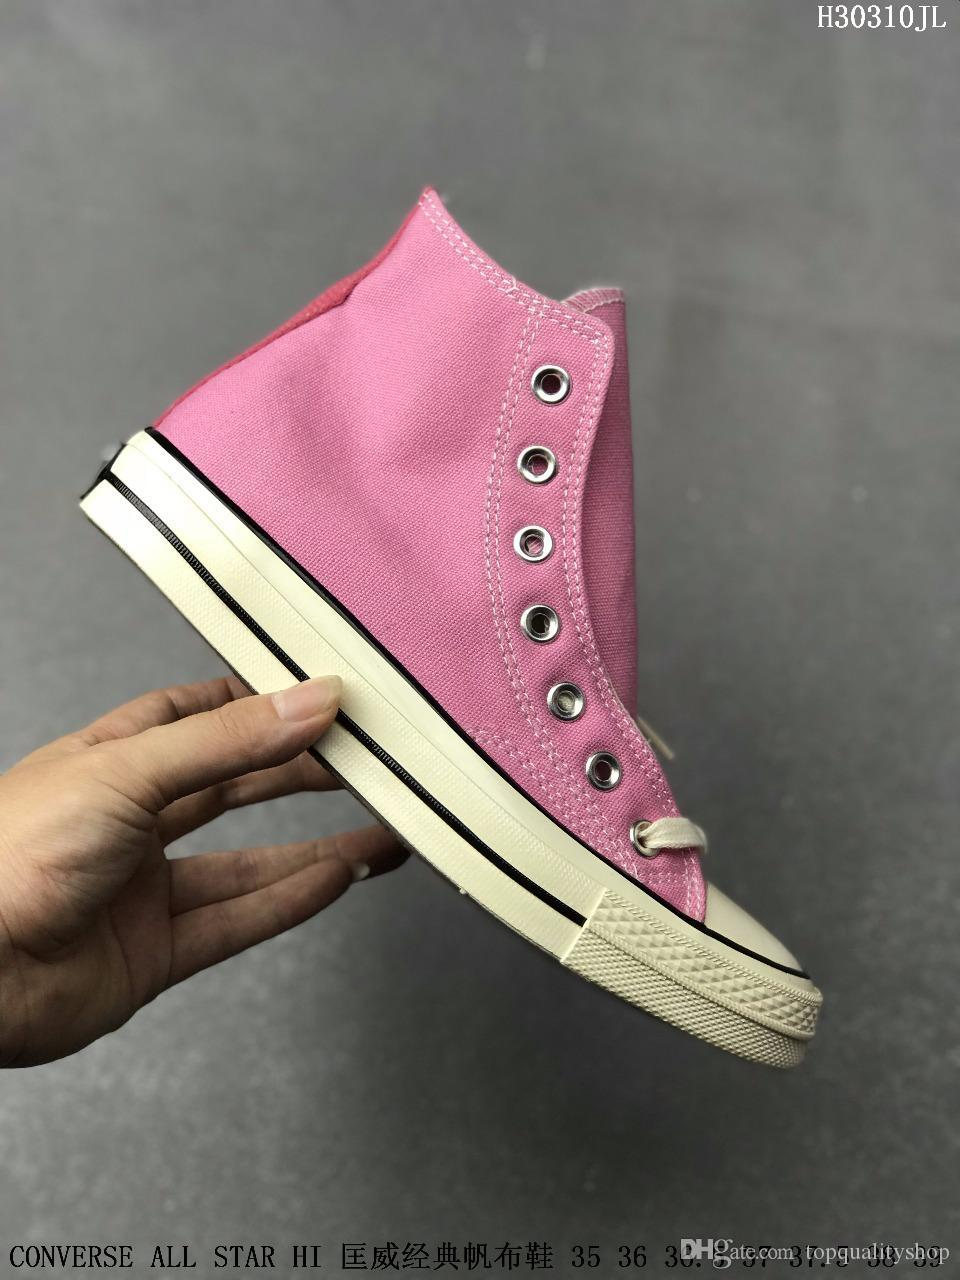 4c0387bb66819f Hot Sale New S Online with $49.11/Pair on Topqualityshop's Store ...